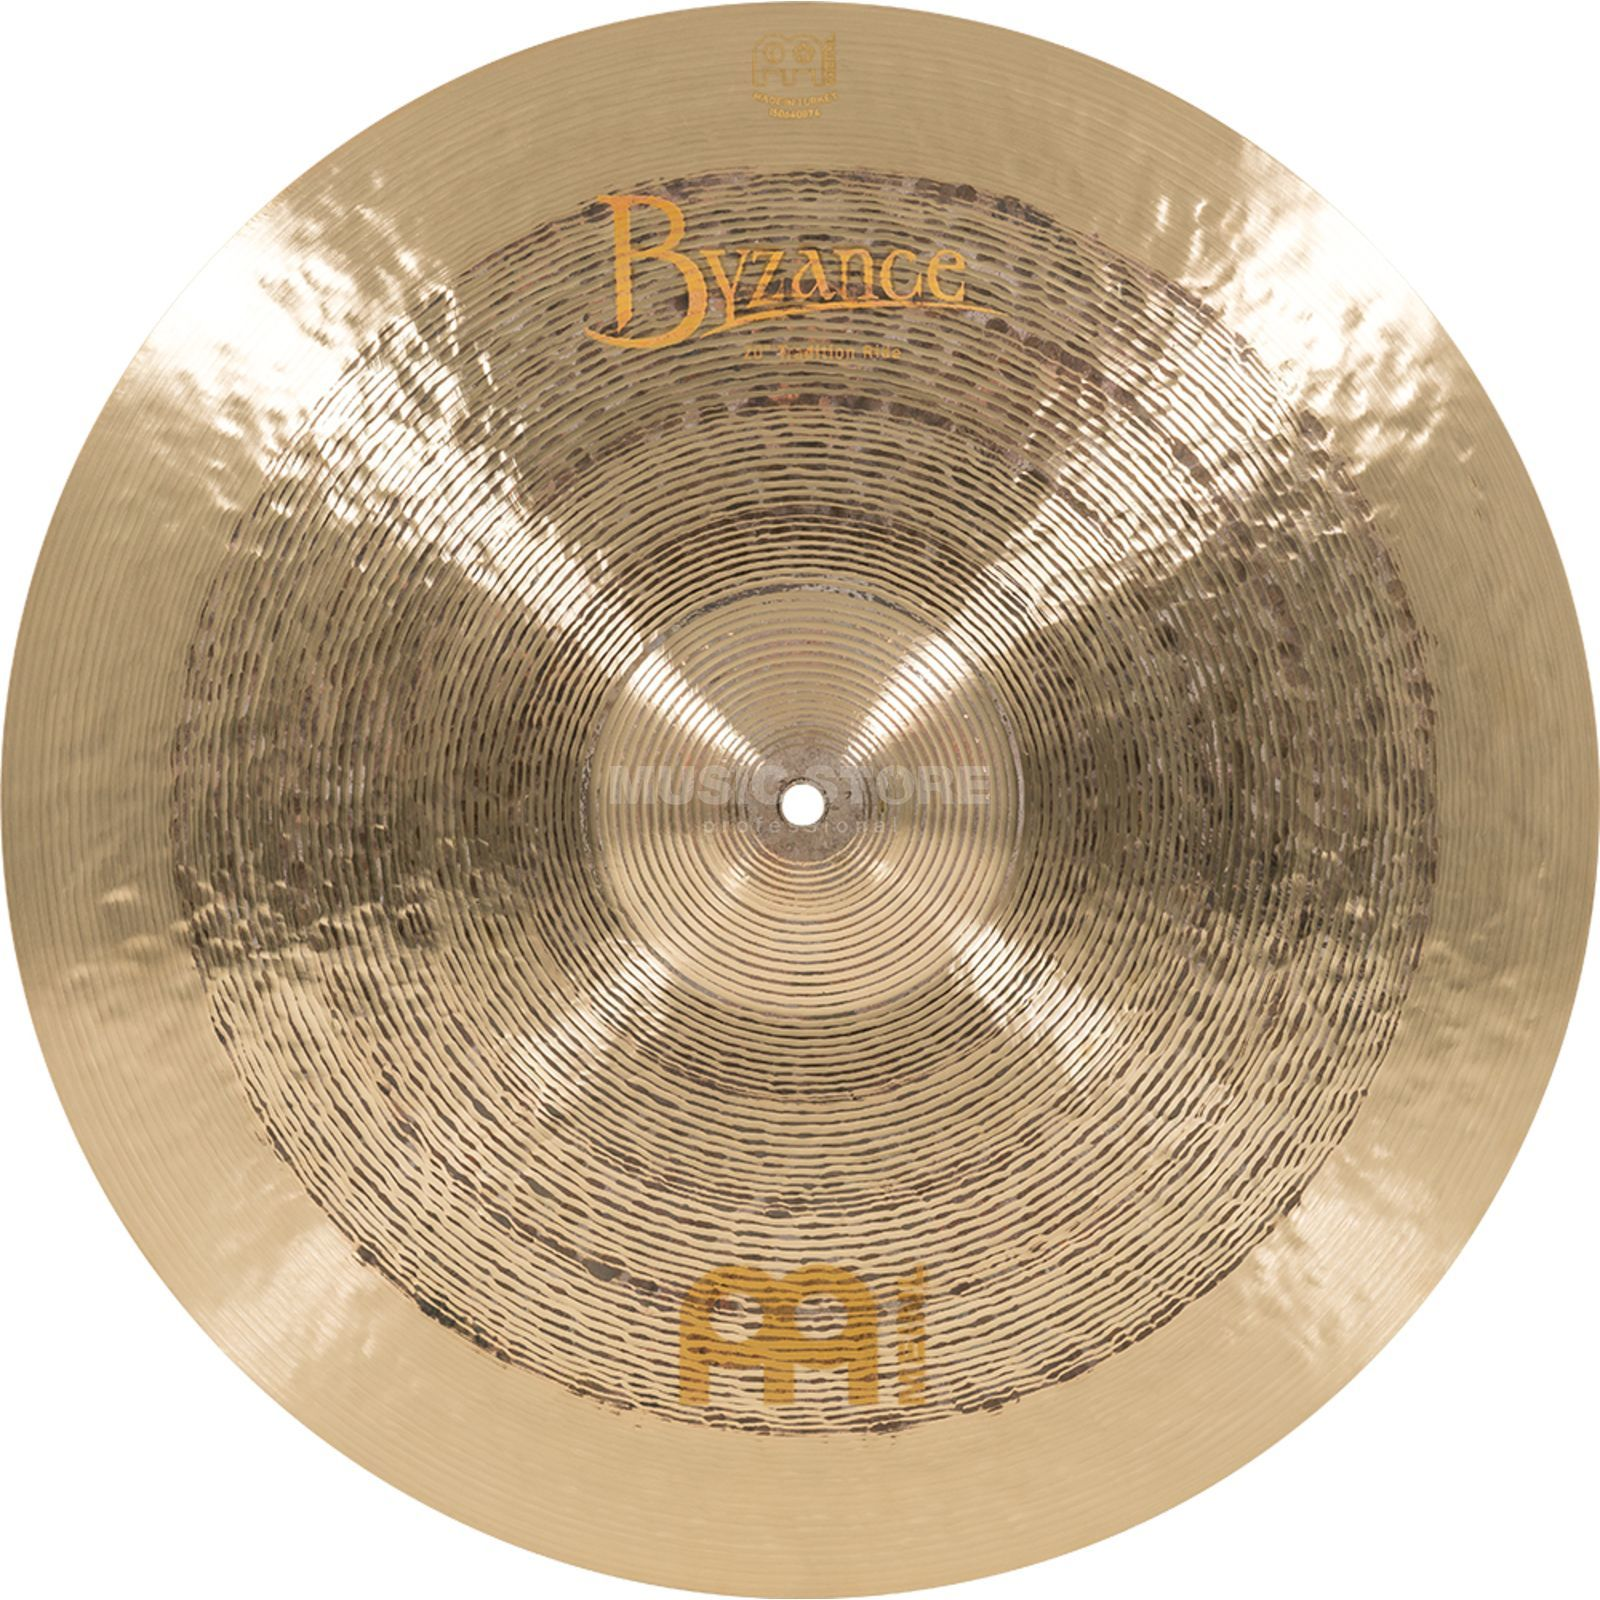 "Meinl Byzance Tradition Ride 20"", B20TRR, Jazz Produktbillede"